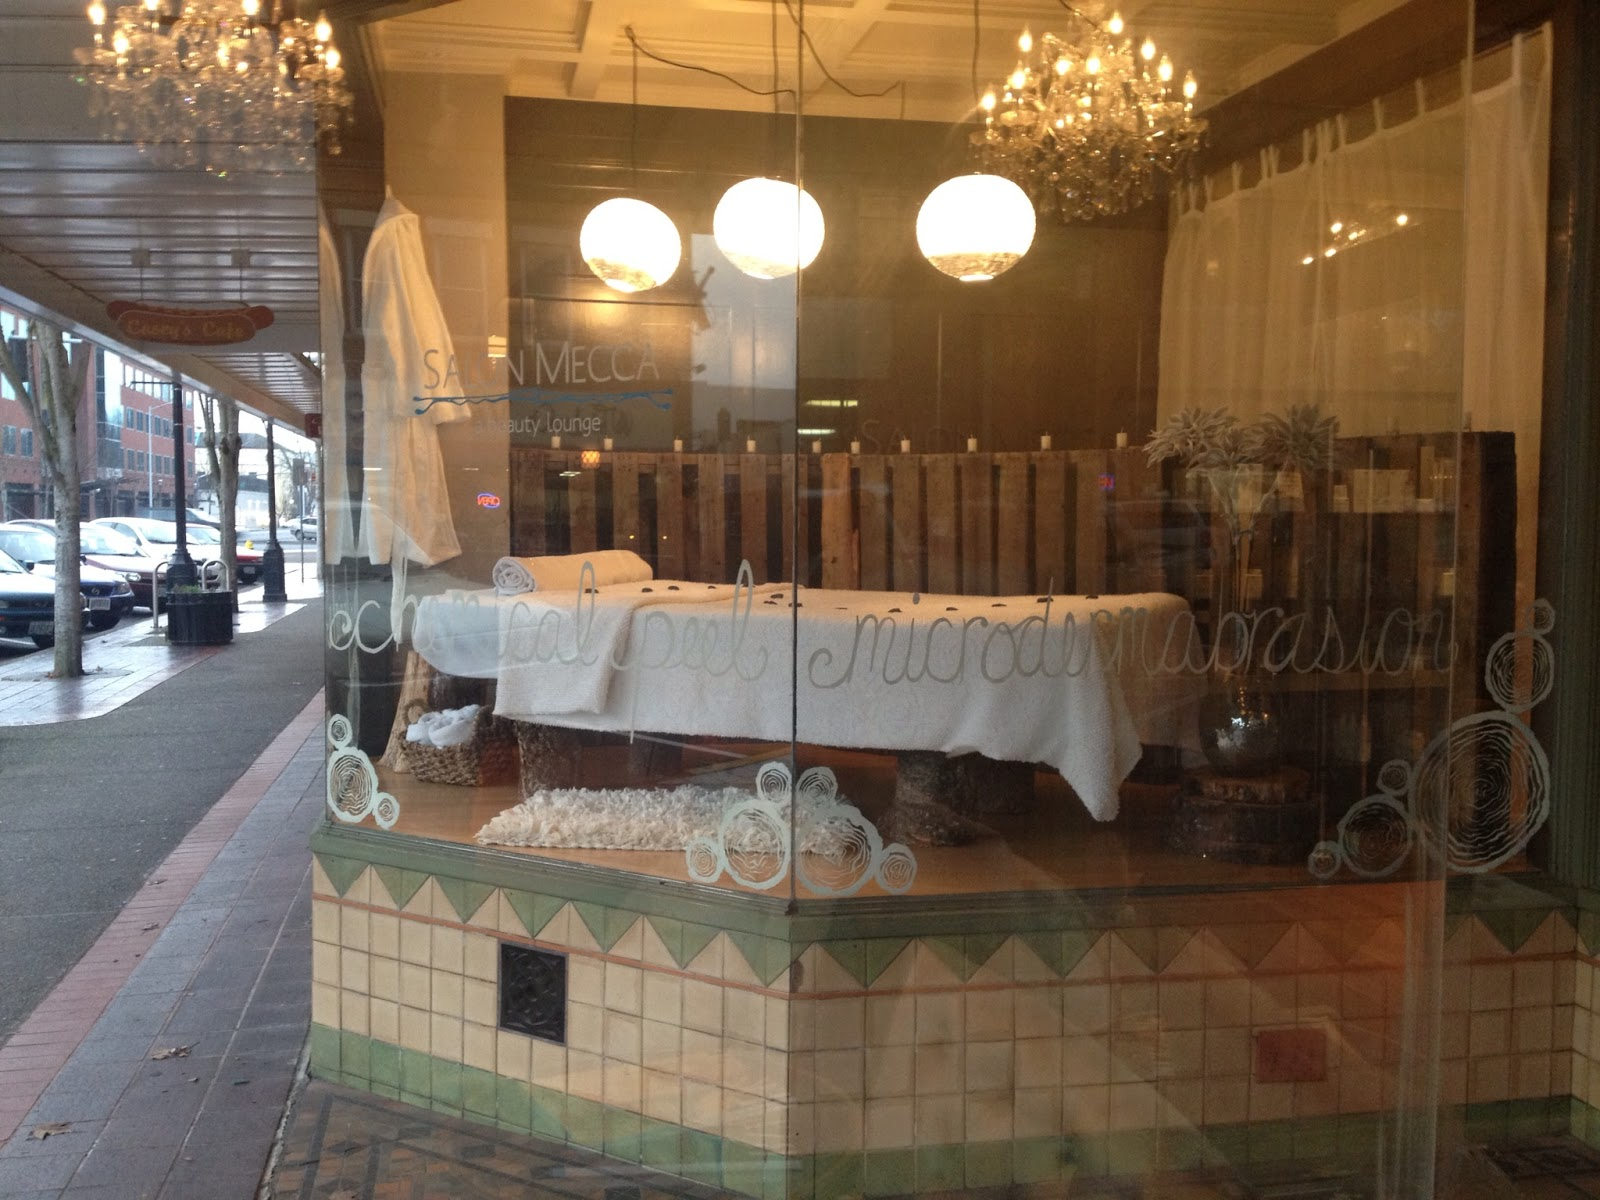 The Farrier's Daughter: Rustic Spa Inspired Window Display